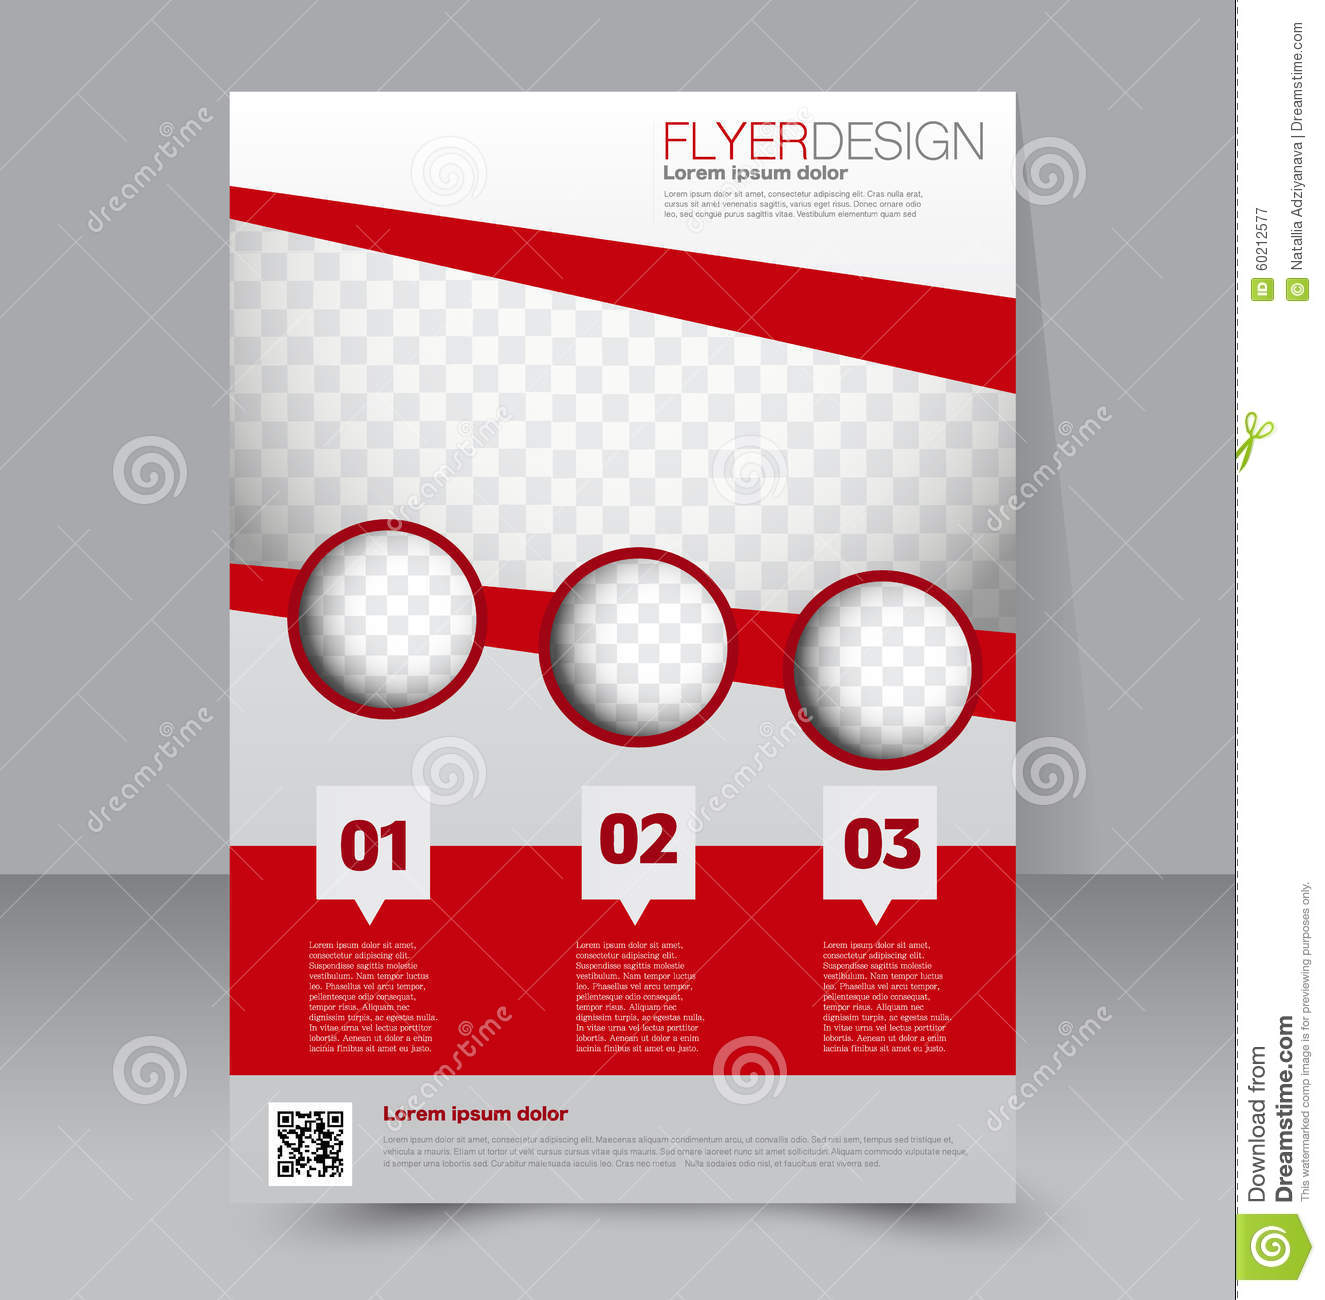 Flyer template brochure design a4 business cover stock for Free flyer brochure templates